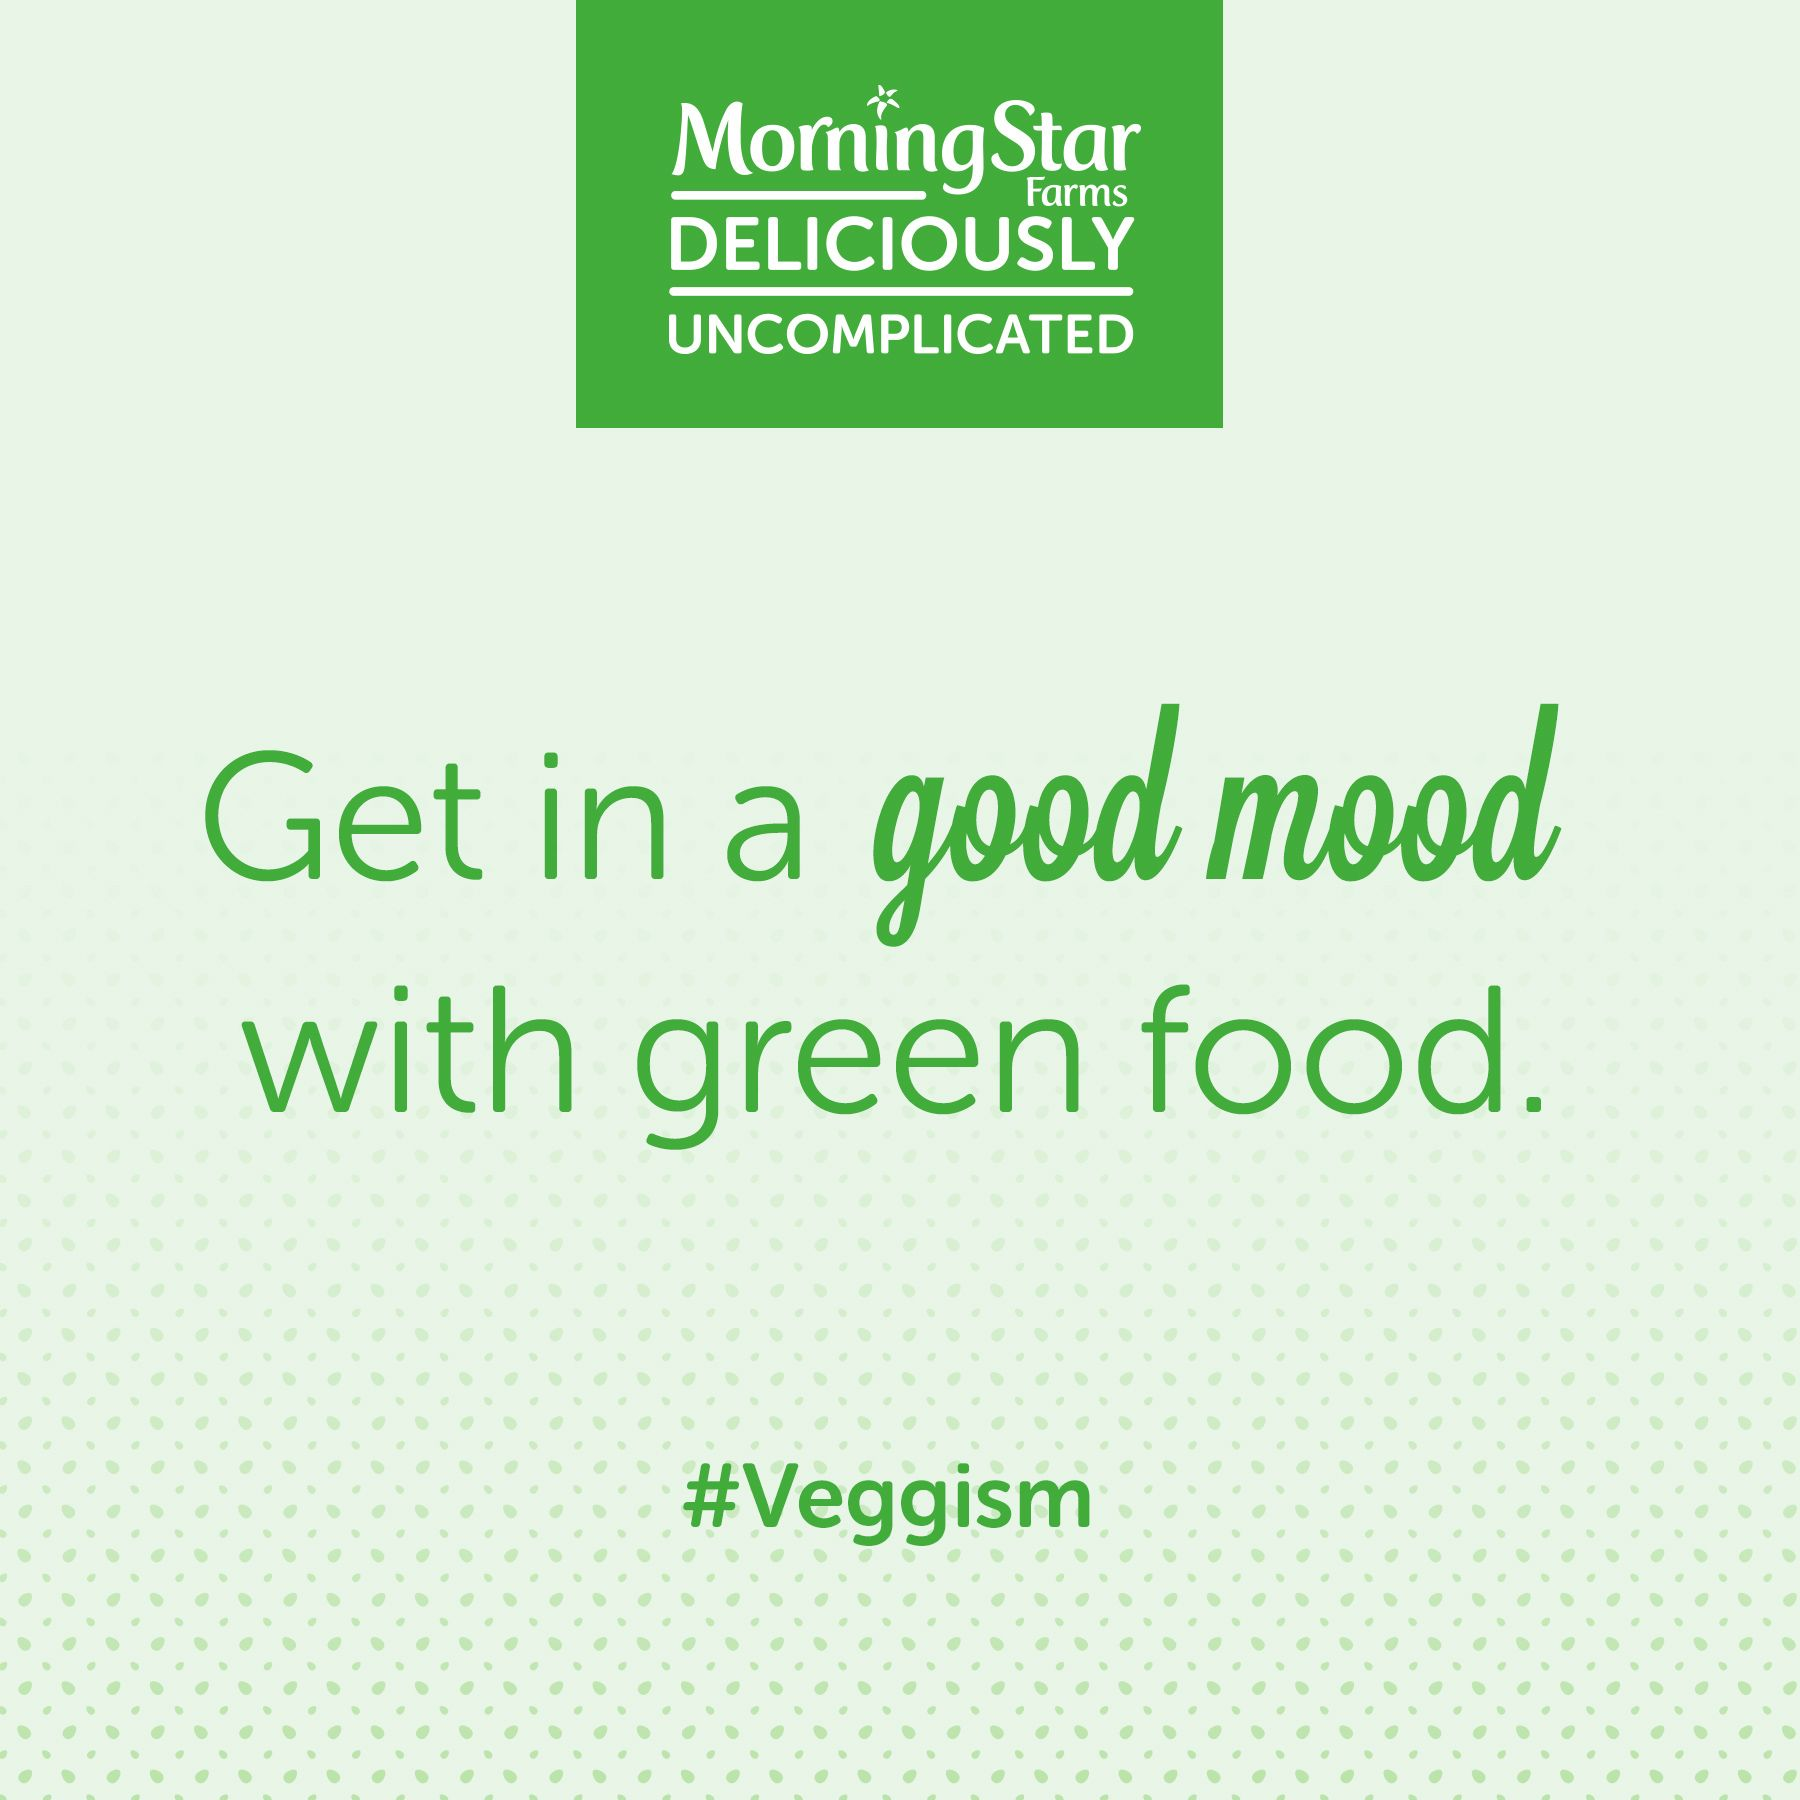 Do you have a #veggism of your own? Comment with yours.